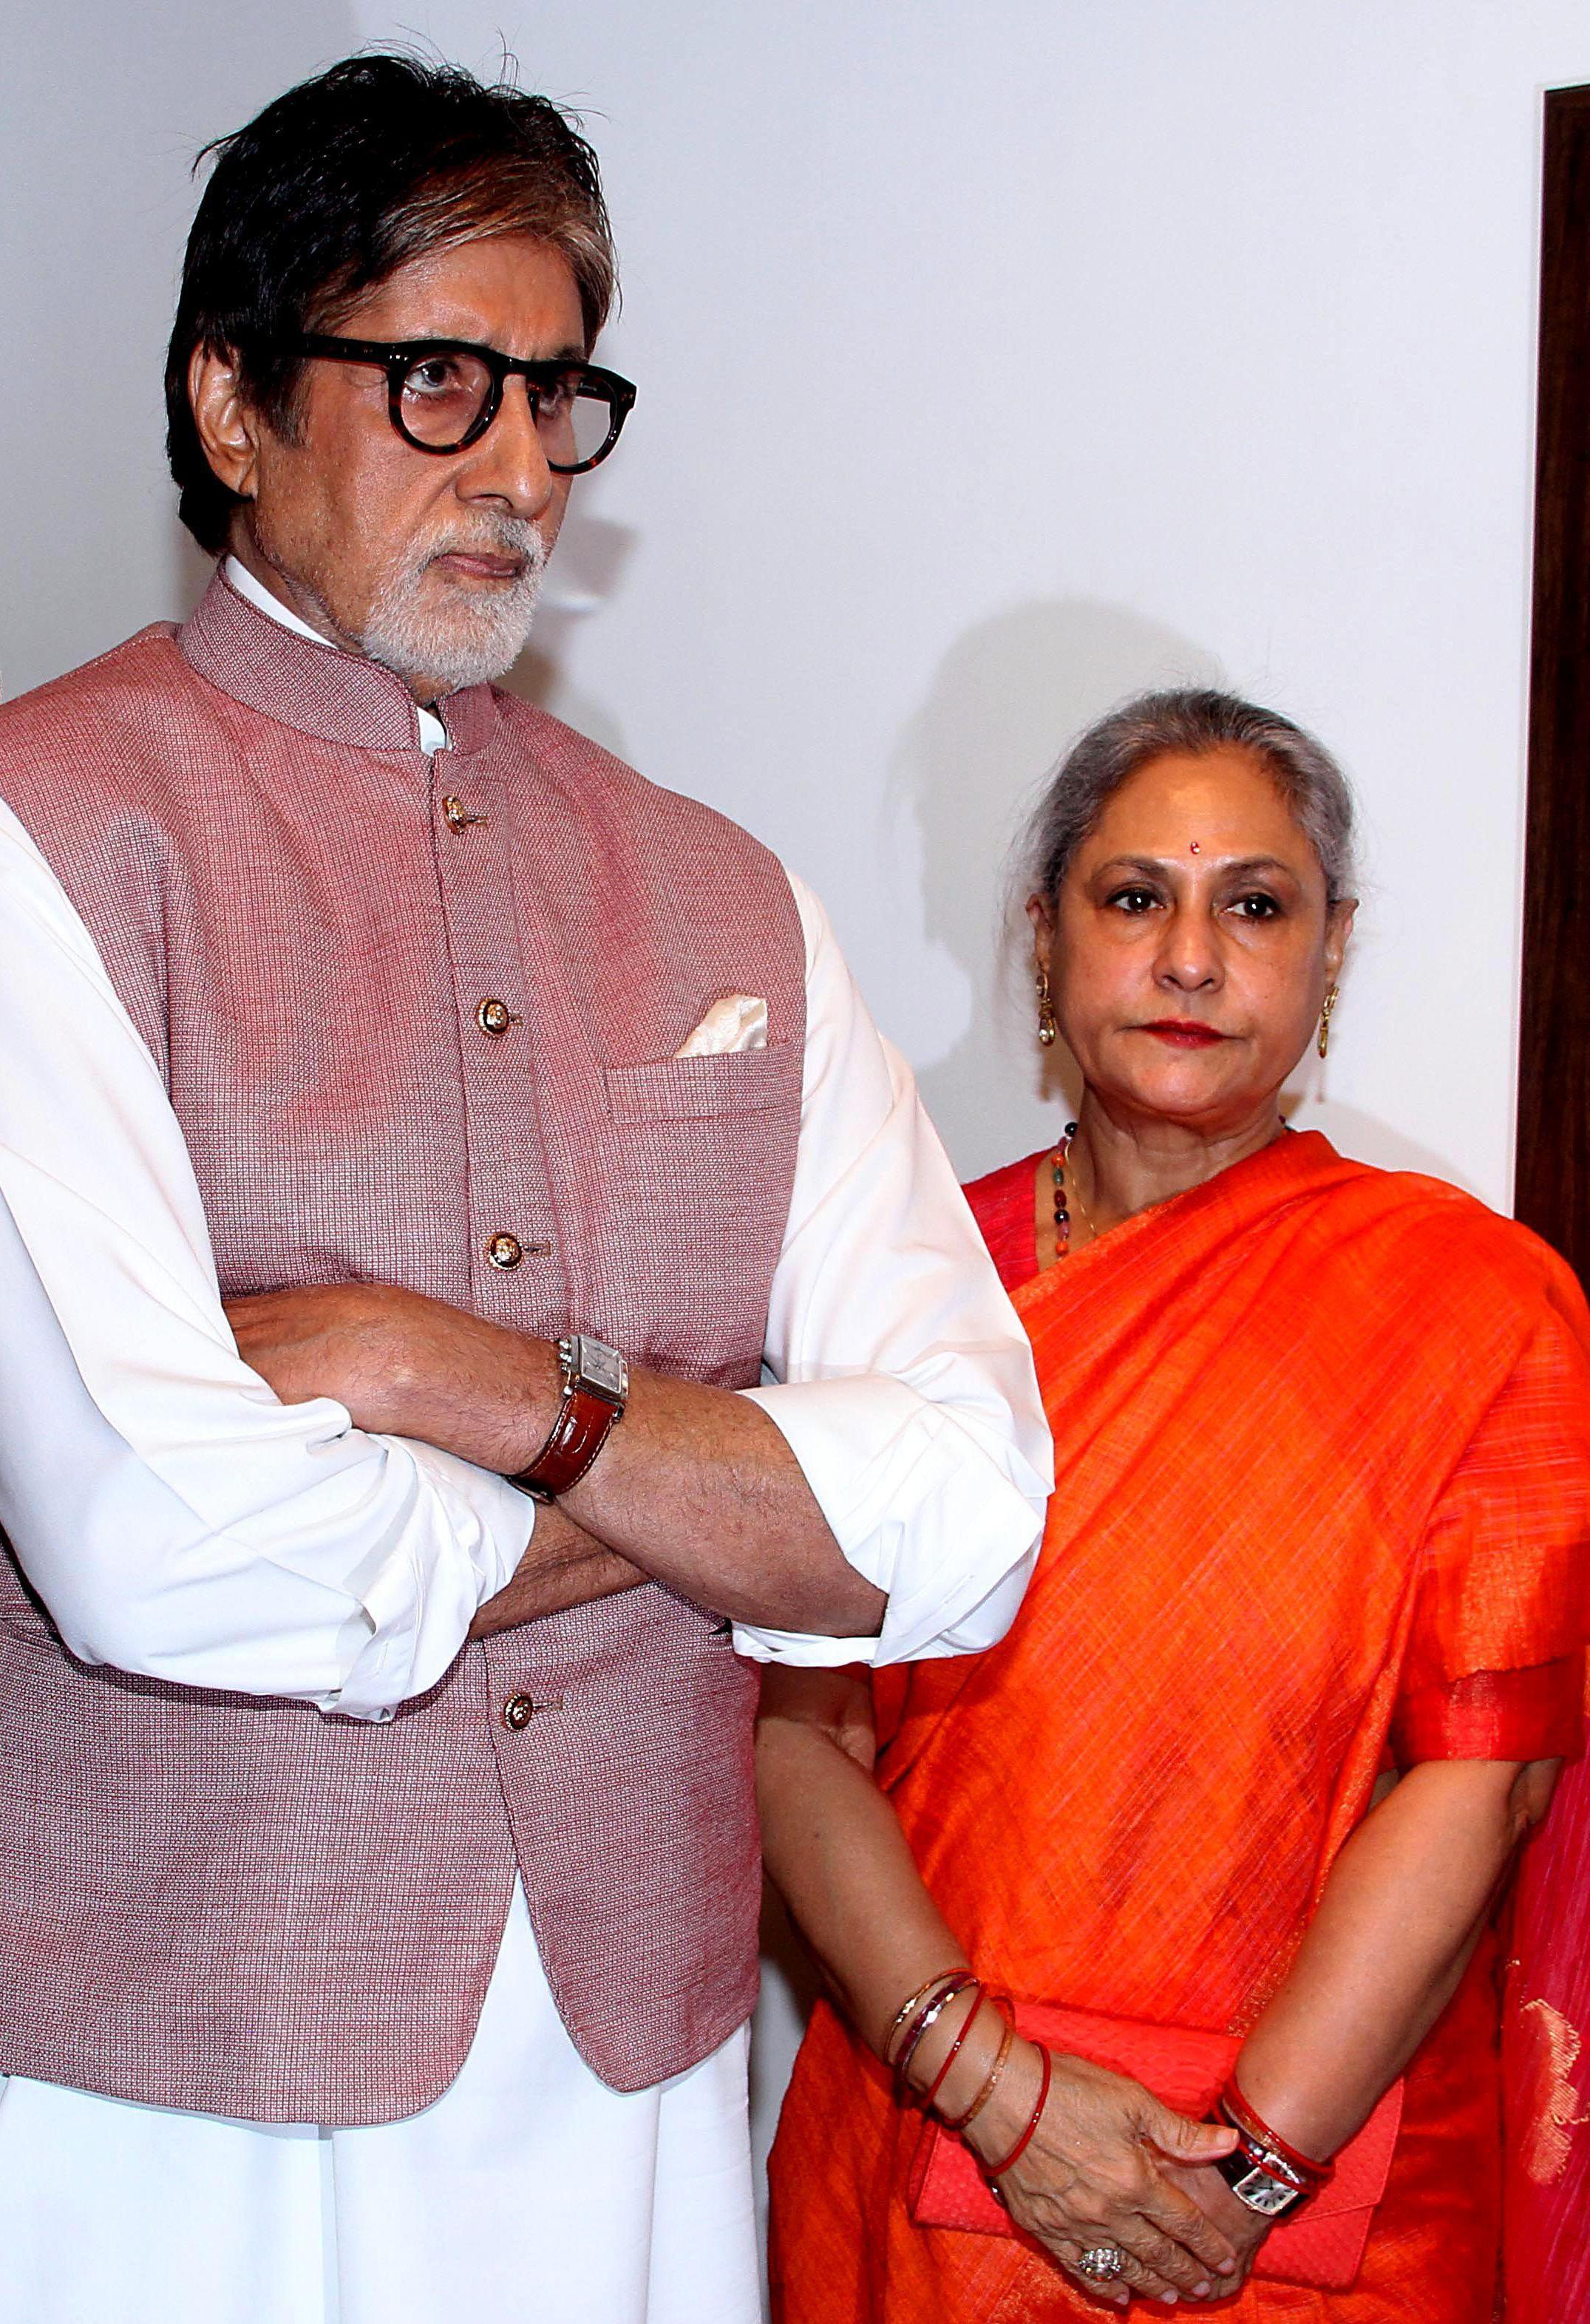 'Please Stop Taking Pictures!': Jaya Bachchan